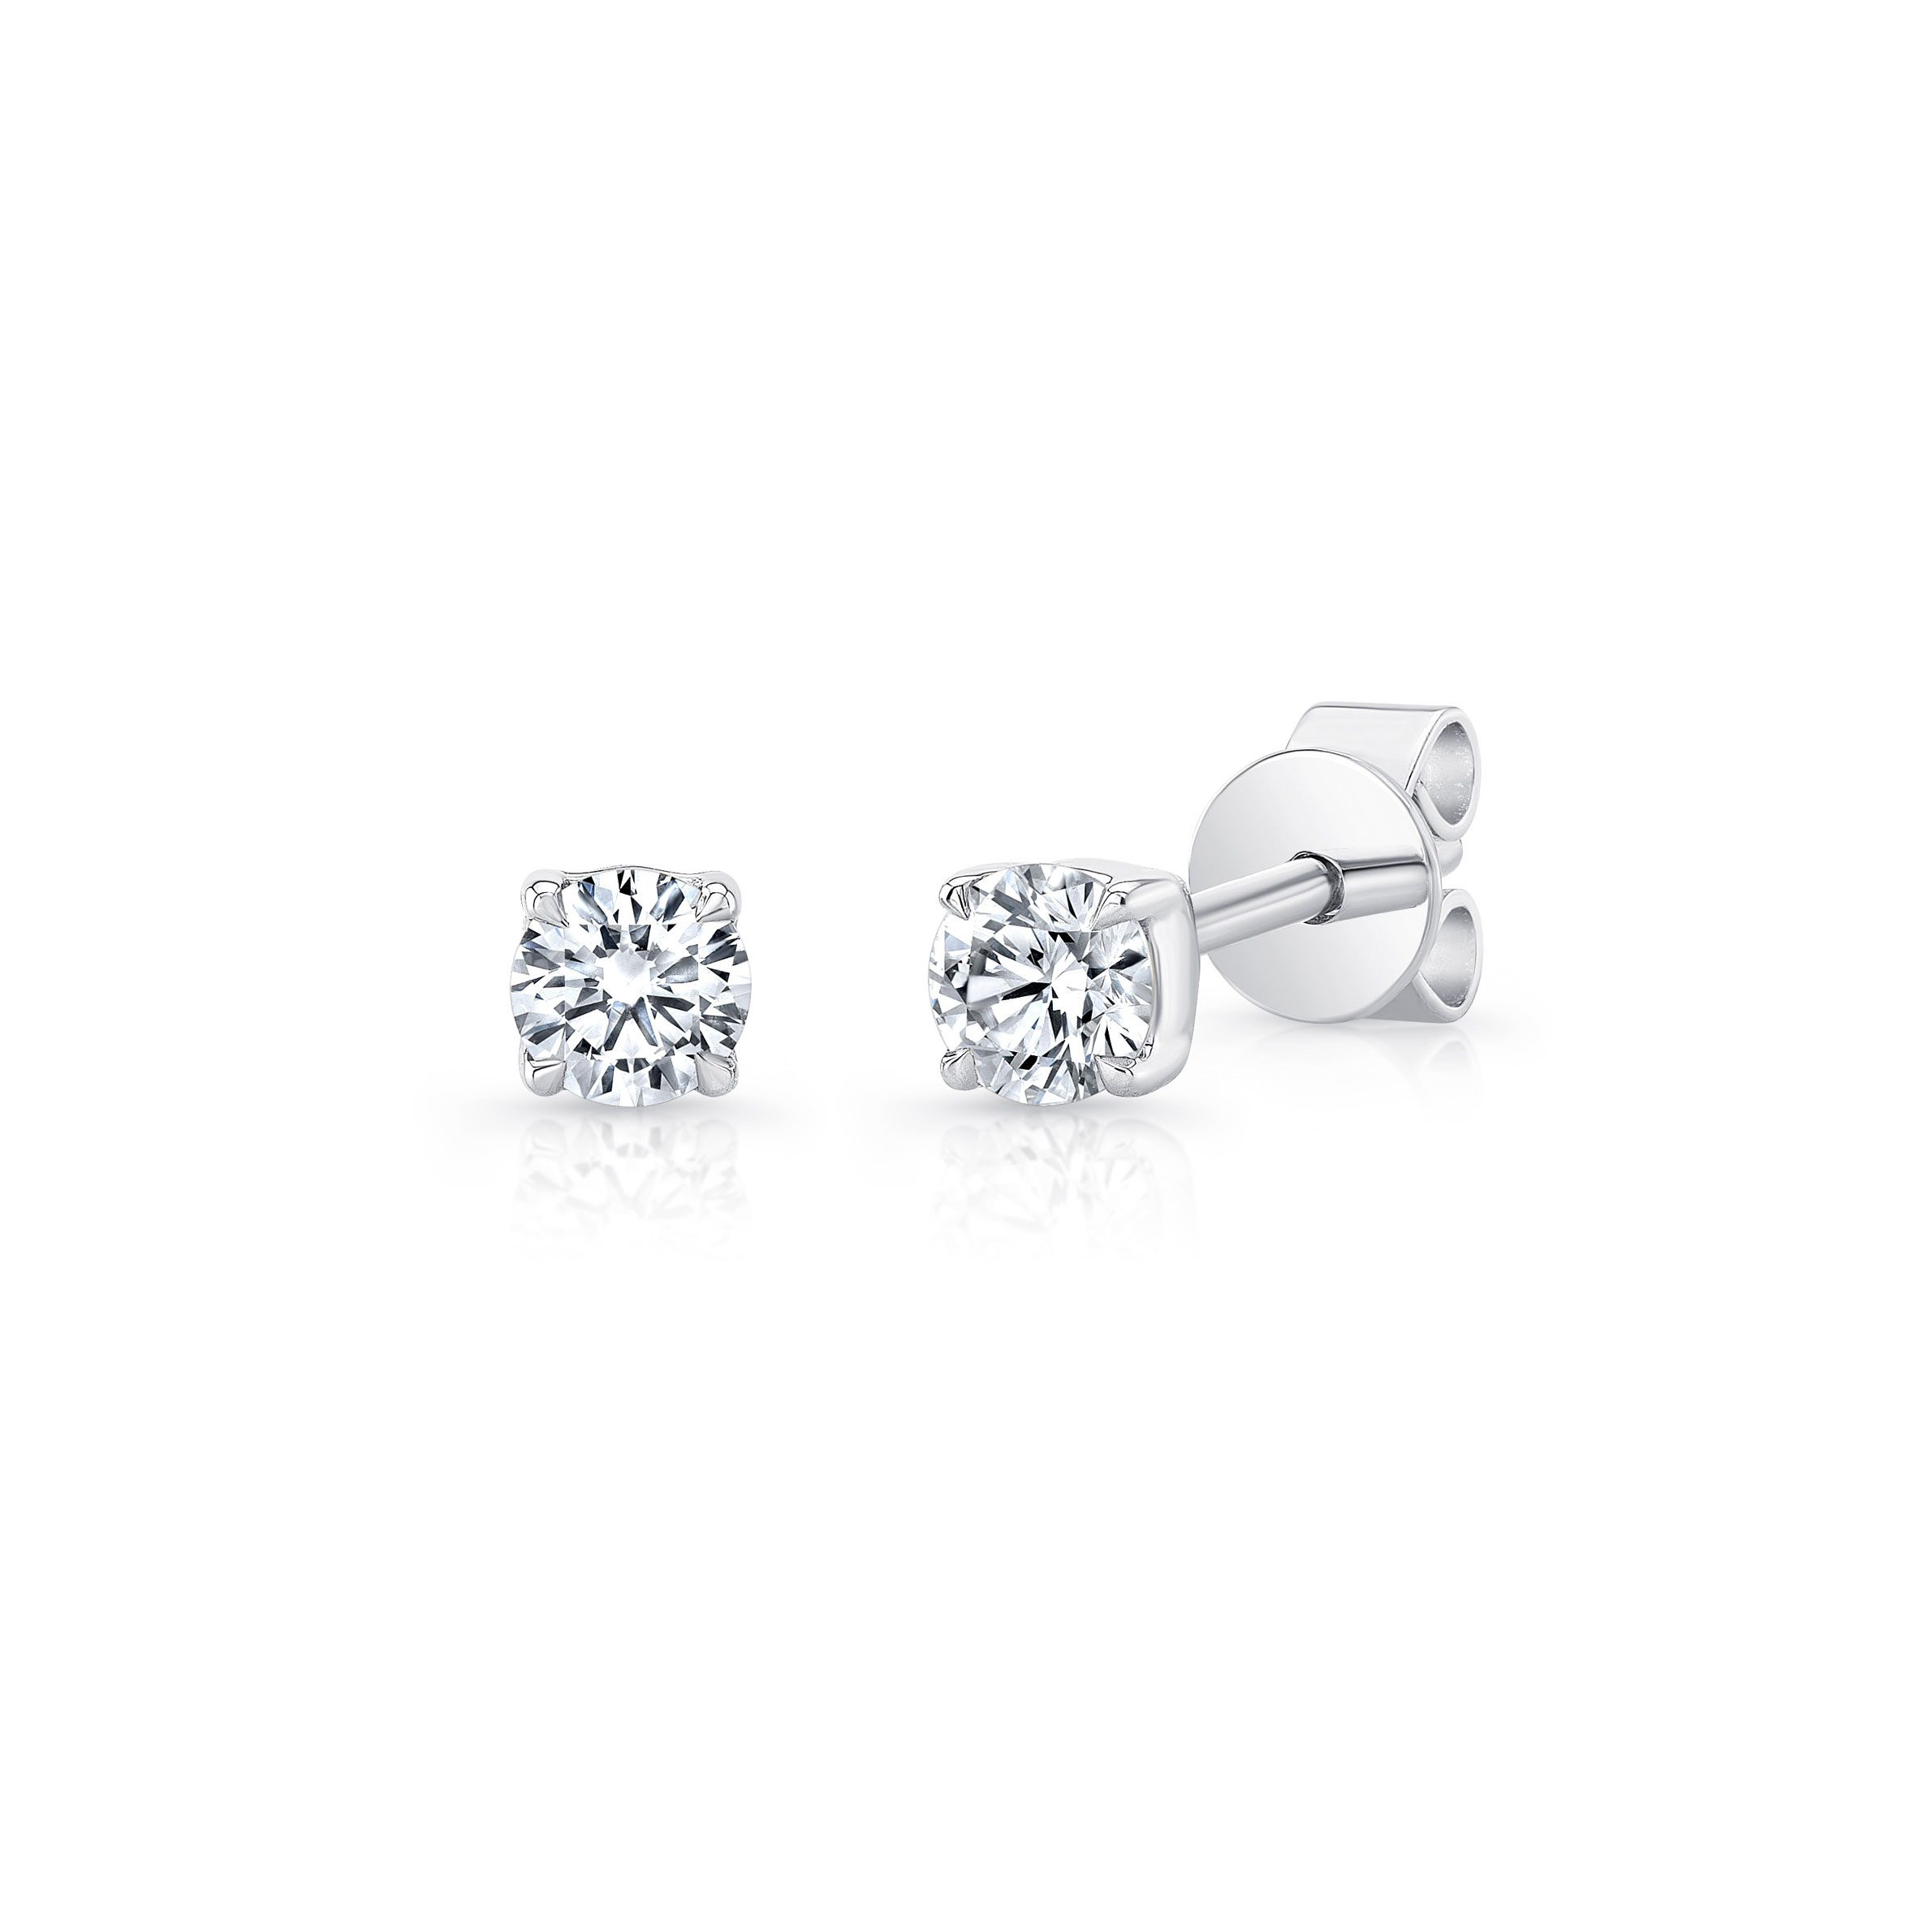 La Petite Round Brilliant Diamond Stud Earrings in 18k White Gold Side View by Oui by Jean Dousset